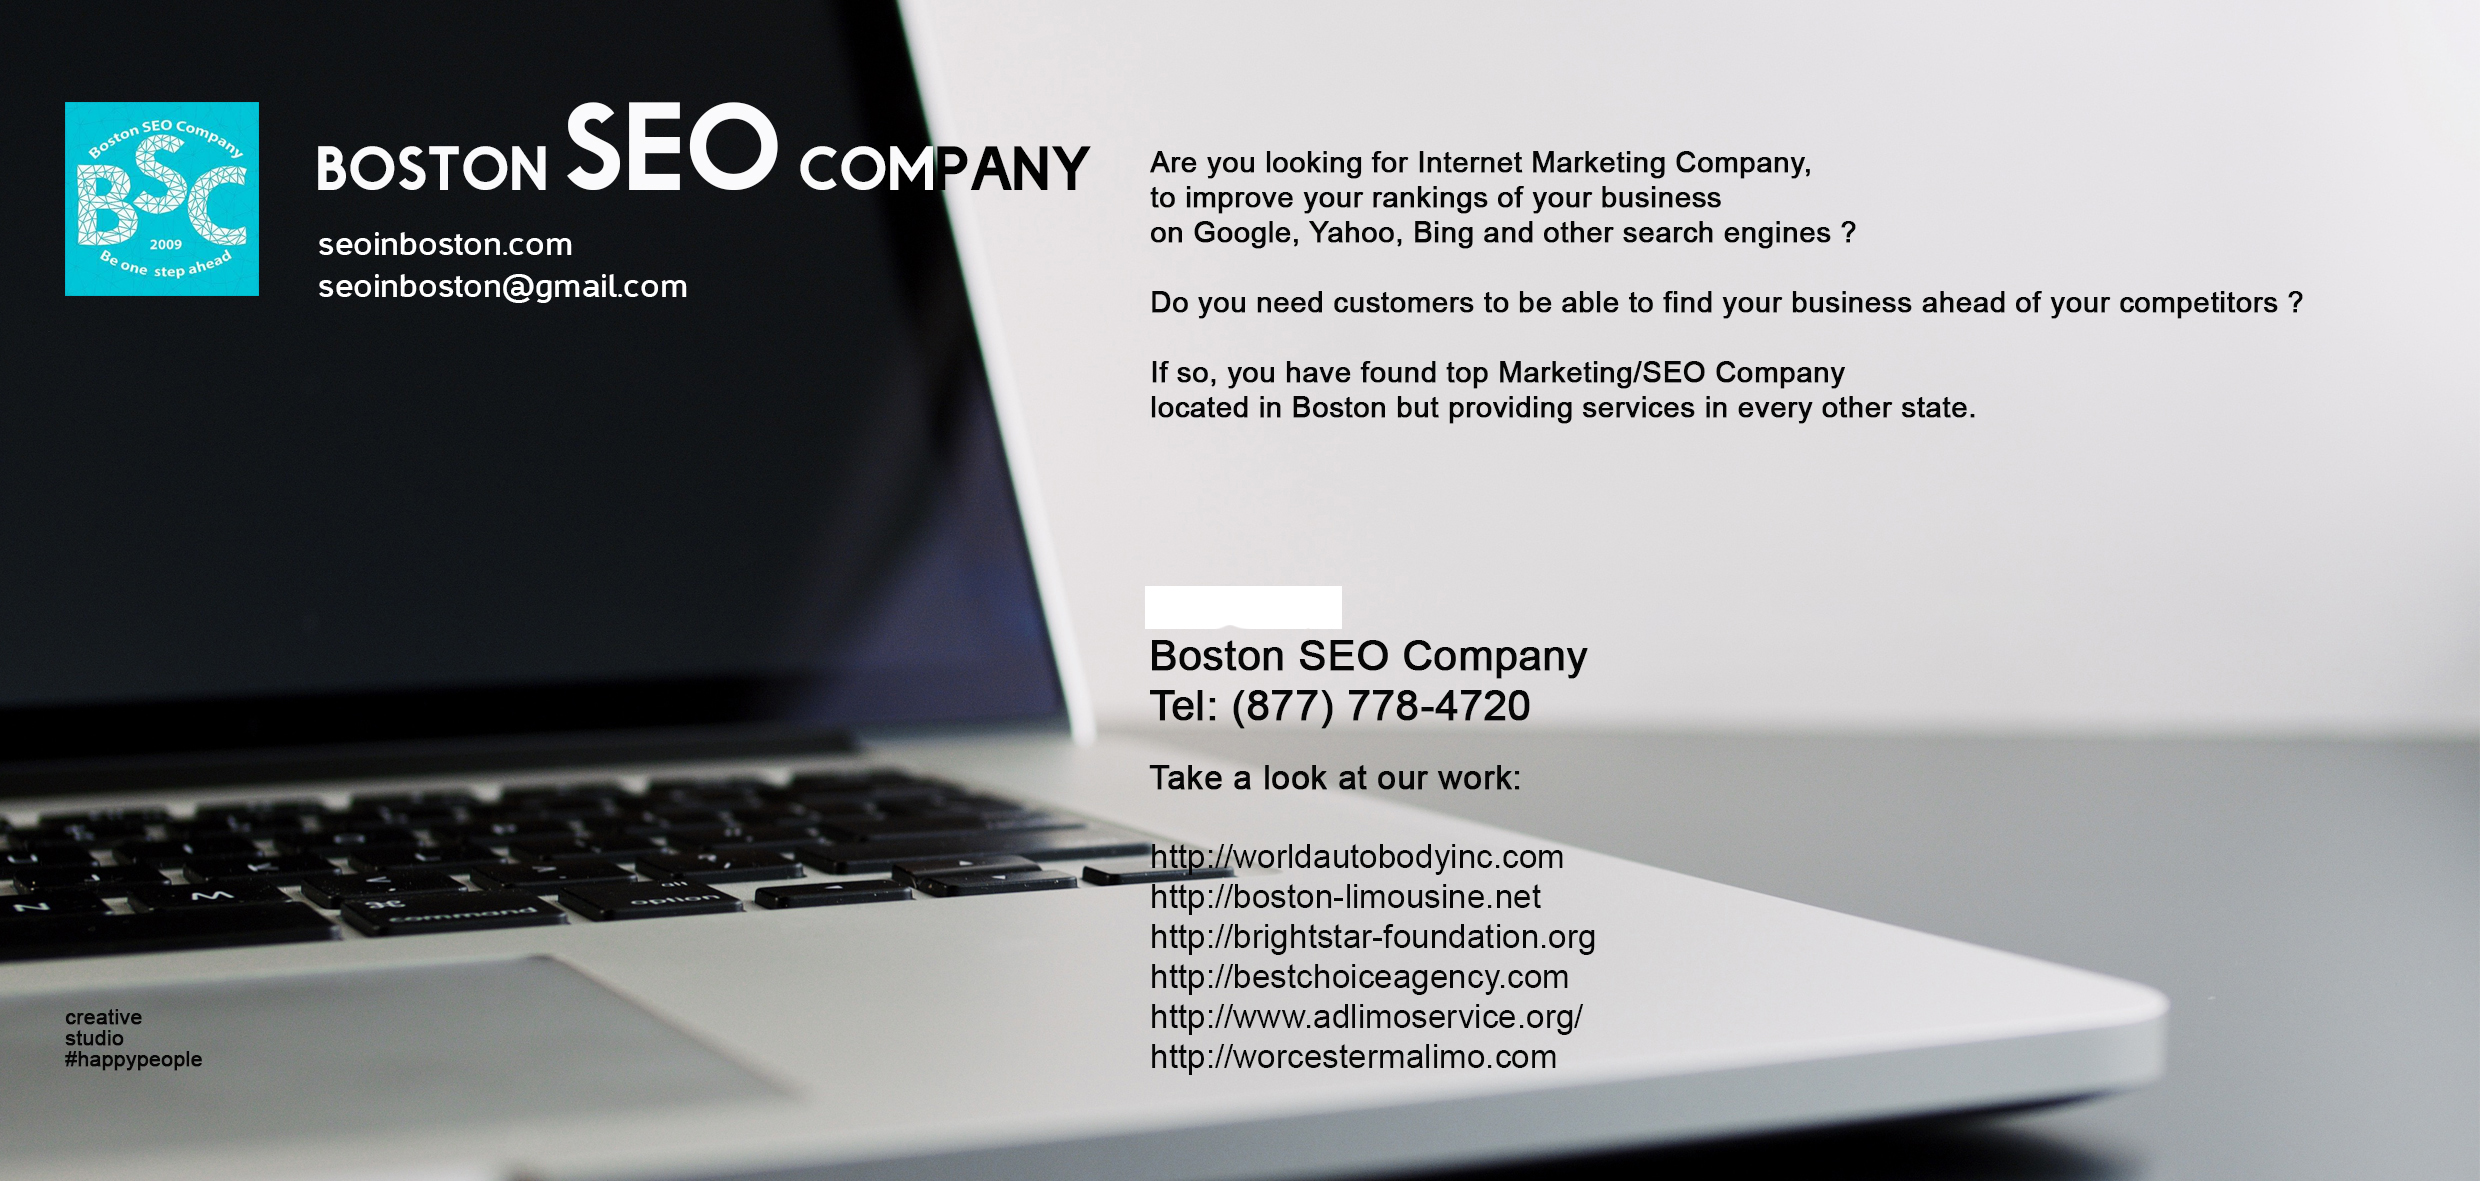 Boston+SEO+Company.jpg